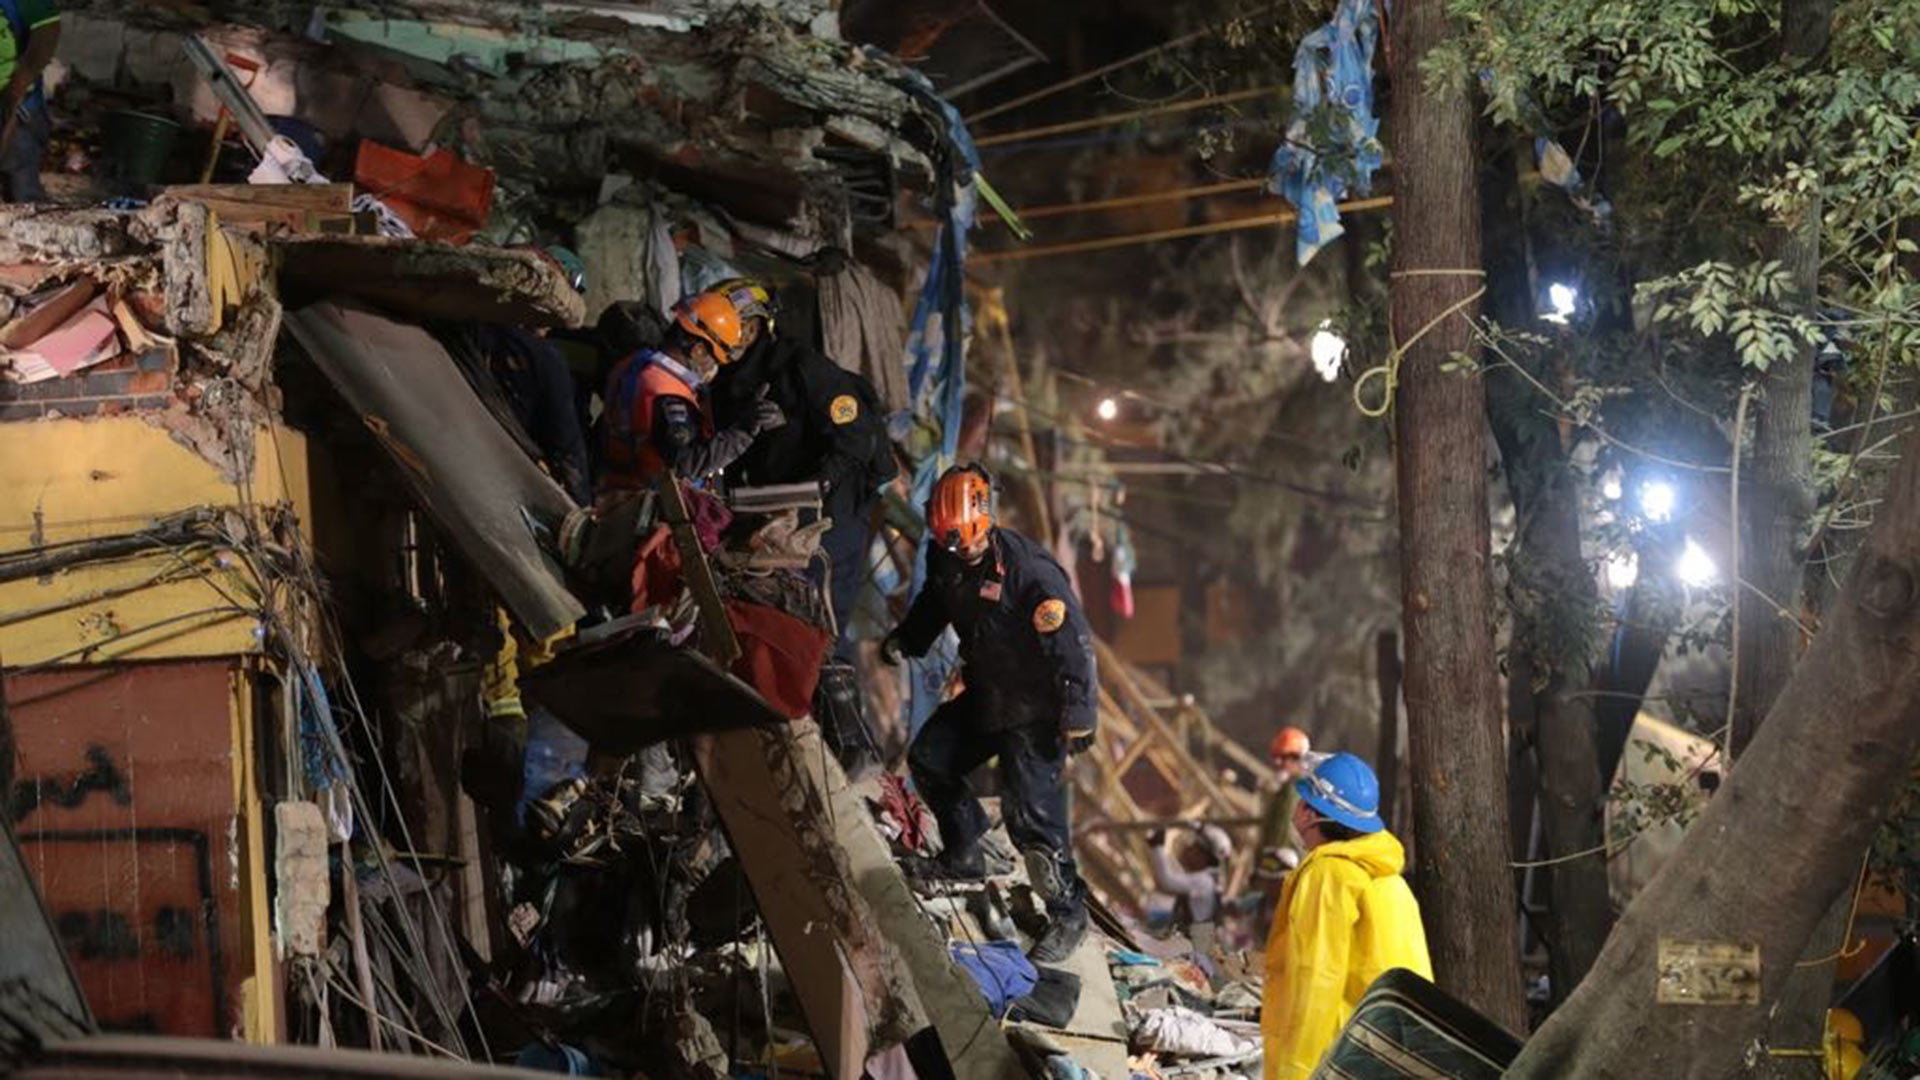 U.S. rescuers from the Disaster Assistance Response Team (DART) climb a collapsed building in Mexico City after the earthquake of Sept. 19, 2017.